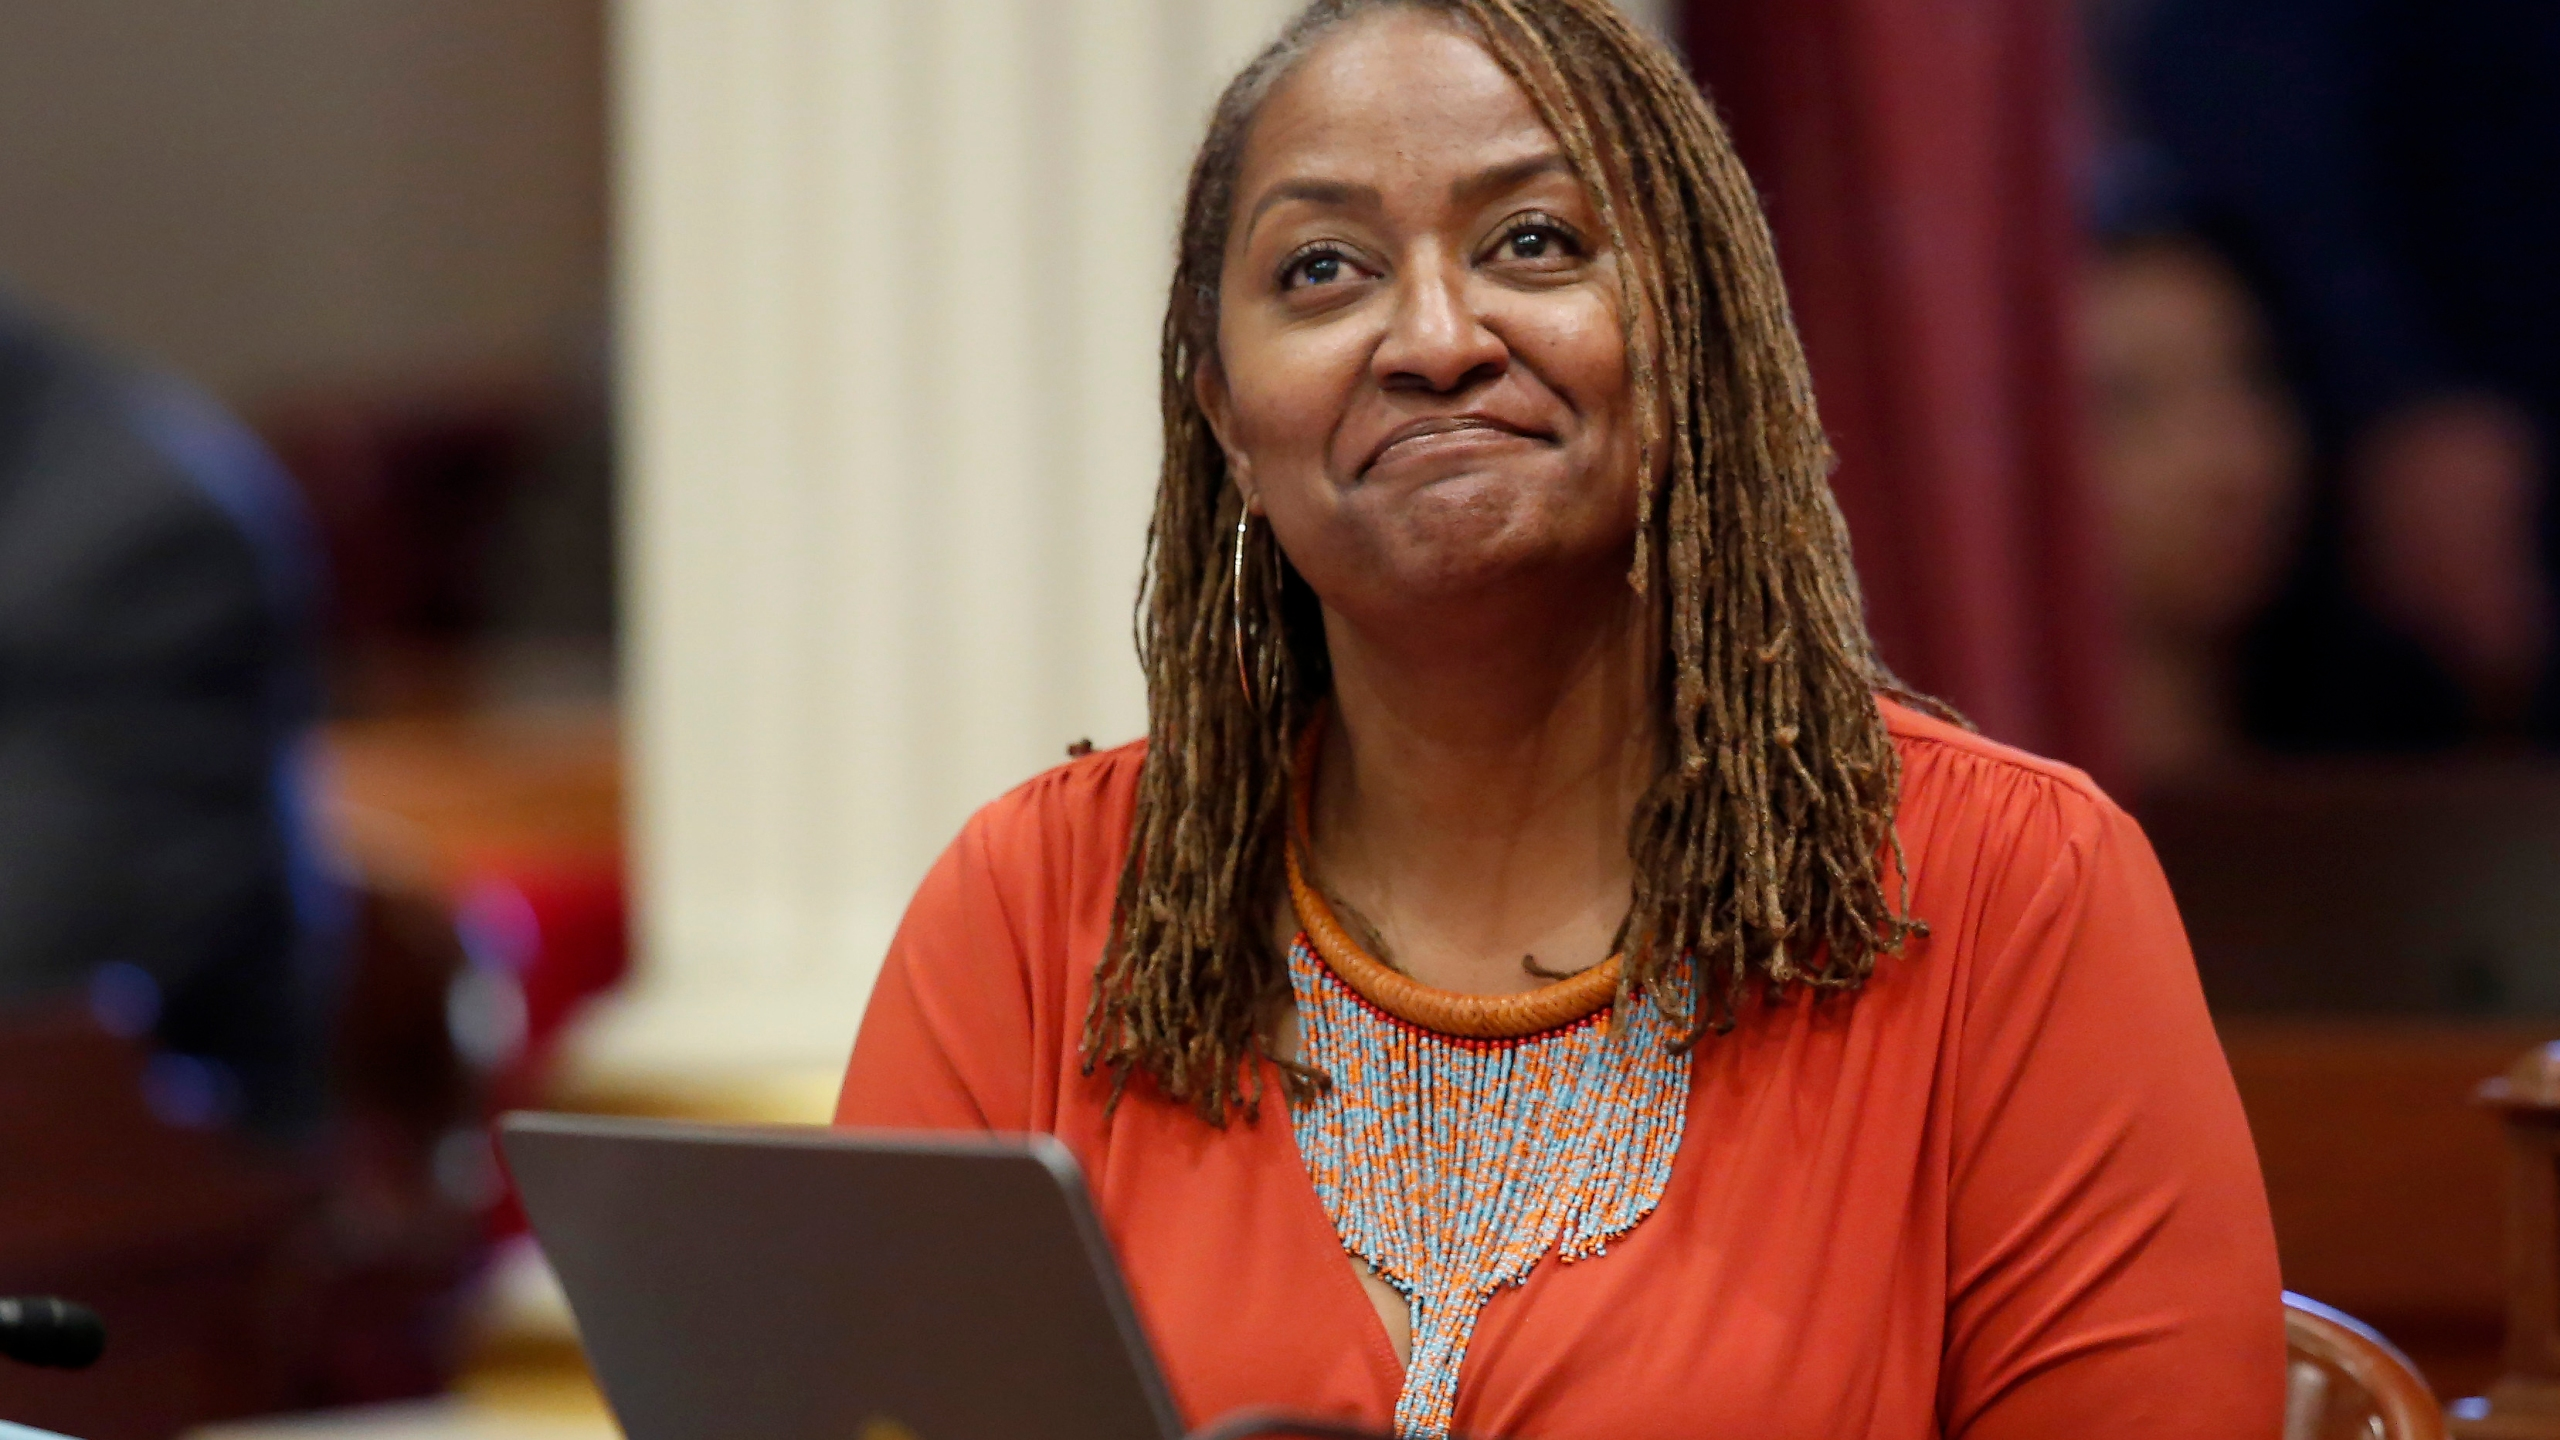 In this July 8, 2019 file photo, state Sen. Holly Mitchell, D-Los Angeles, reacts in the Senate chamber in Sacramento, Calif. (Rich Pedroncelli/AP Photo)